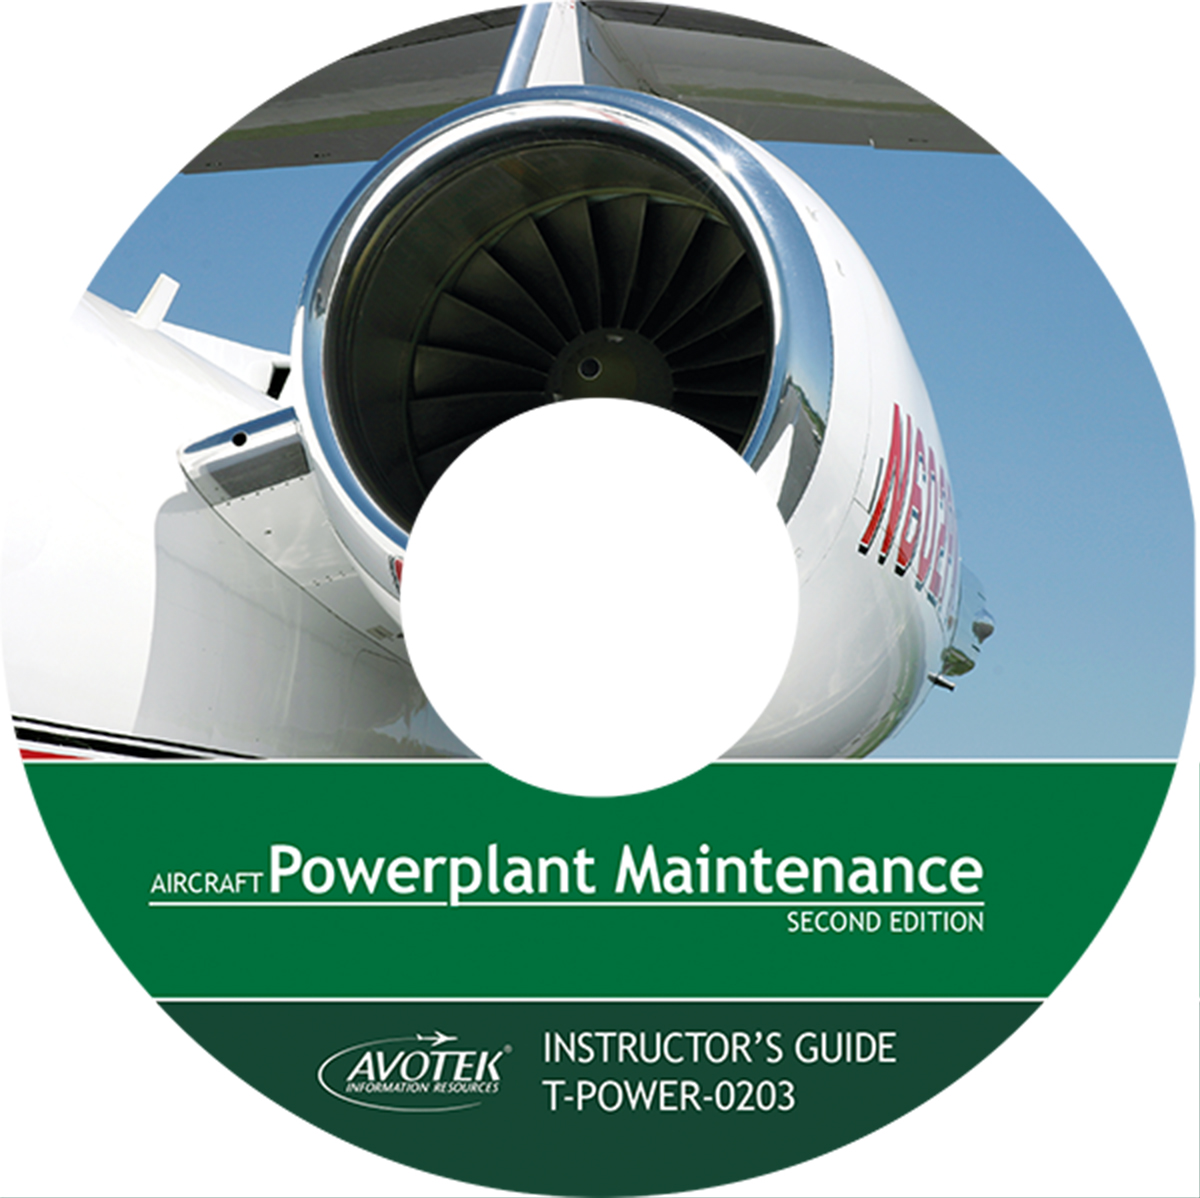 Volume 4: Aircraft Powerplant Maintenance - Instructor's Guide CD